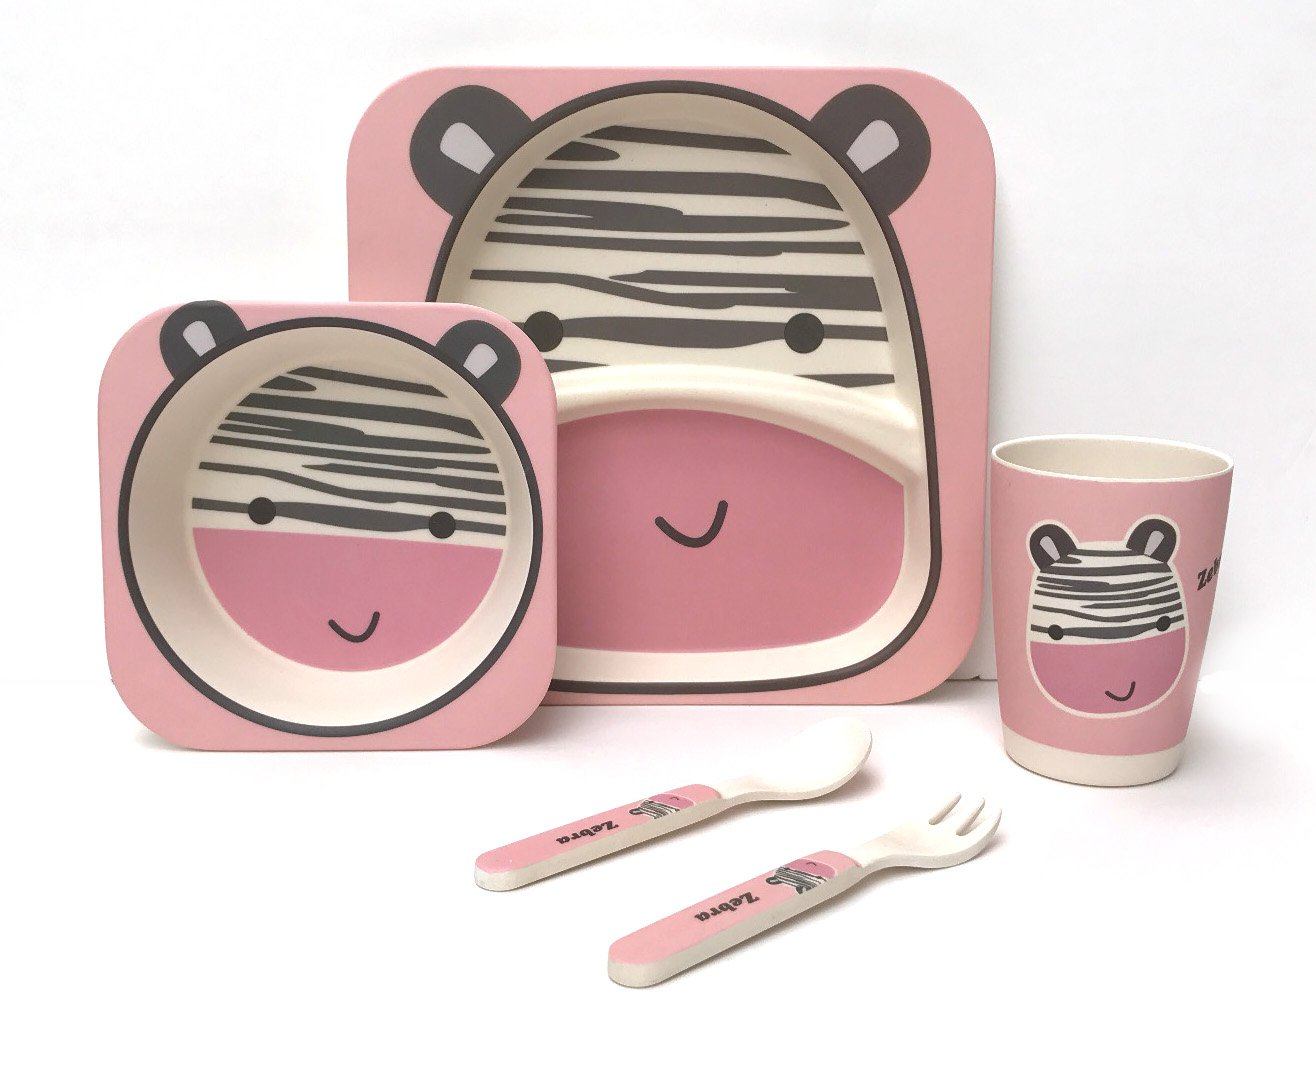 Children's 5 Piece Bamboo Dinner Set - 100% Bamboo Fibre, Eco-Friendly, Dishwasher Safe (Elephant) Ana Wiz Ltd